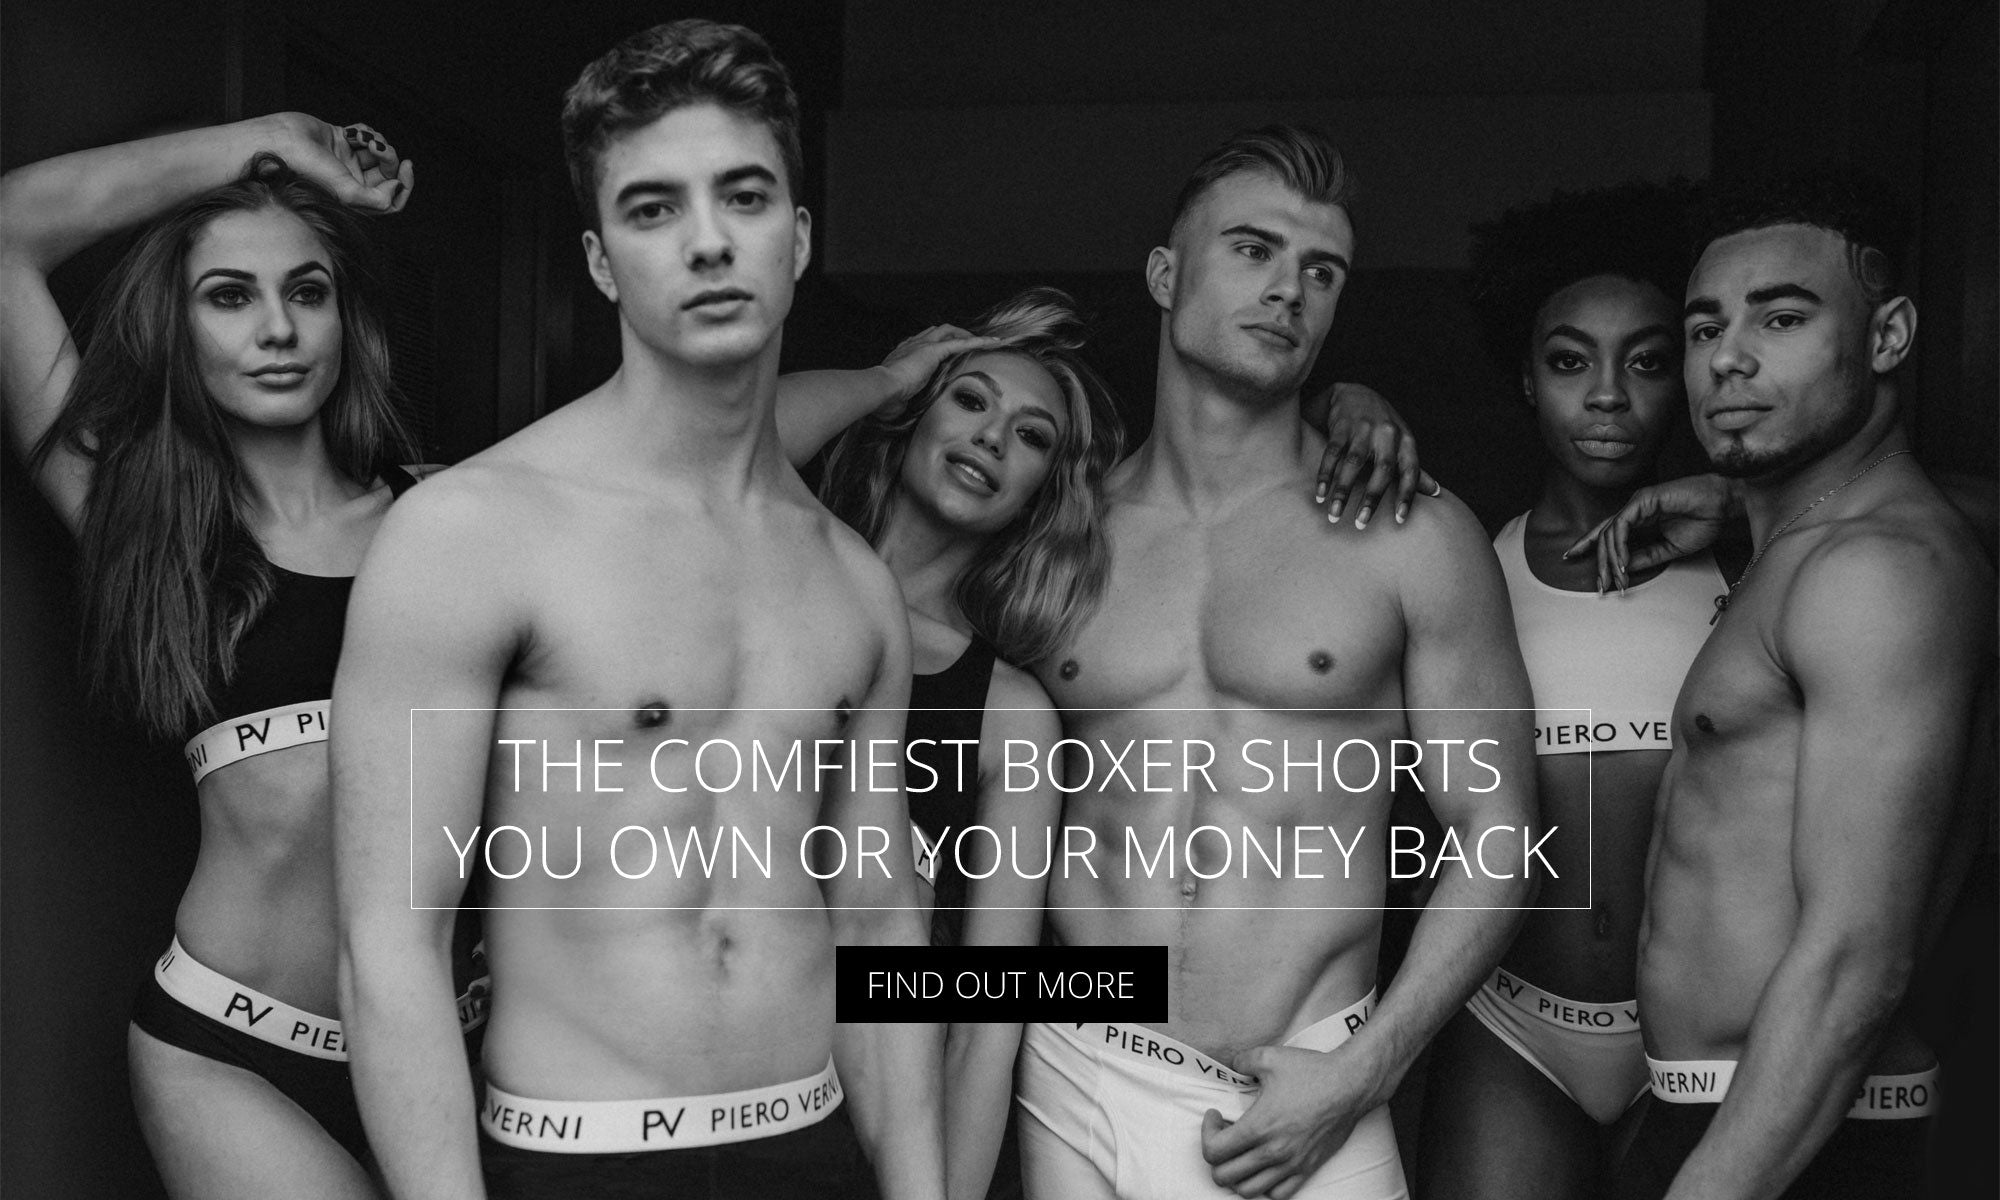 The comfiest boxer shorts you own or your money back - Find out more